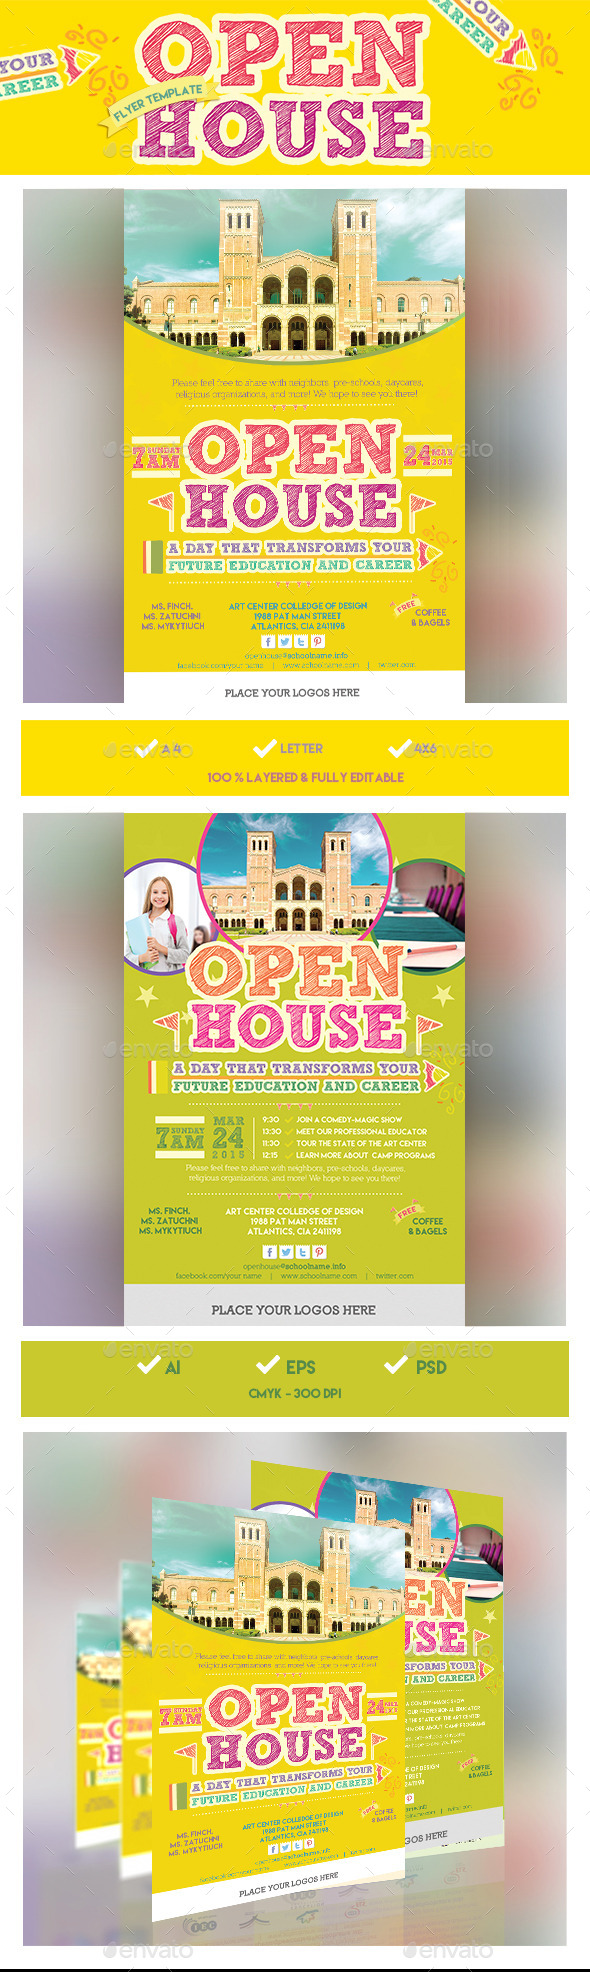 High school open house brochure template for Open house brochure template